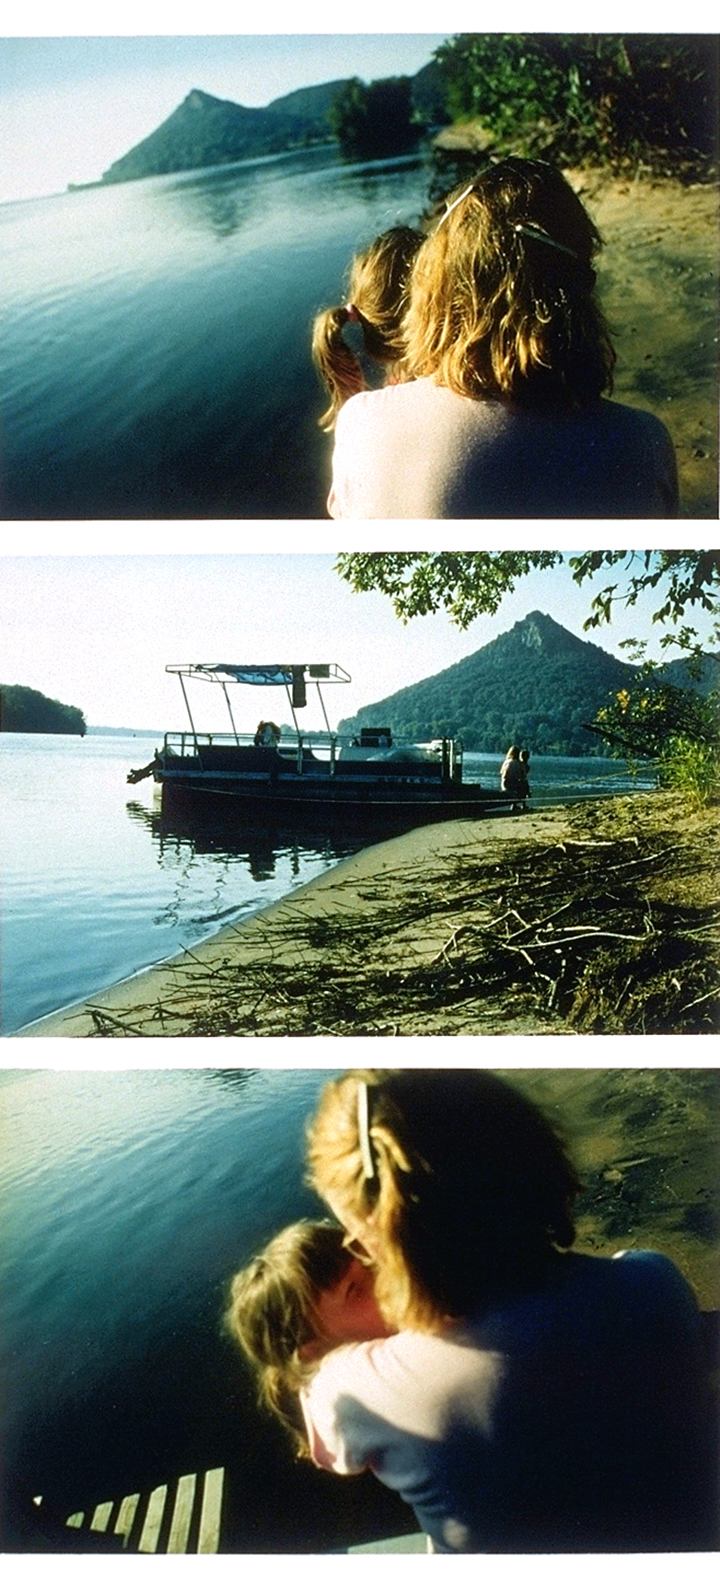 T1_128_pk146 94 B6.23 0003_cd 3258 files_3258-0077_Lg.jpg